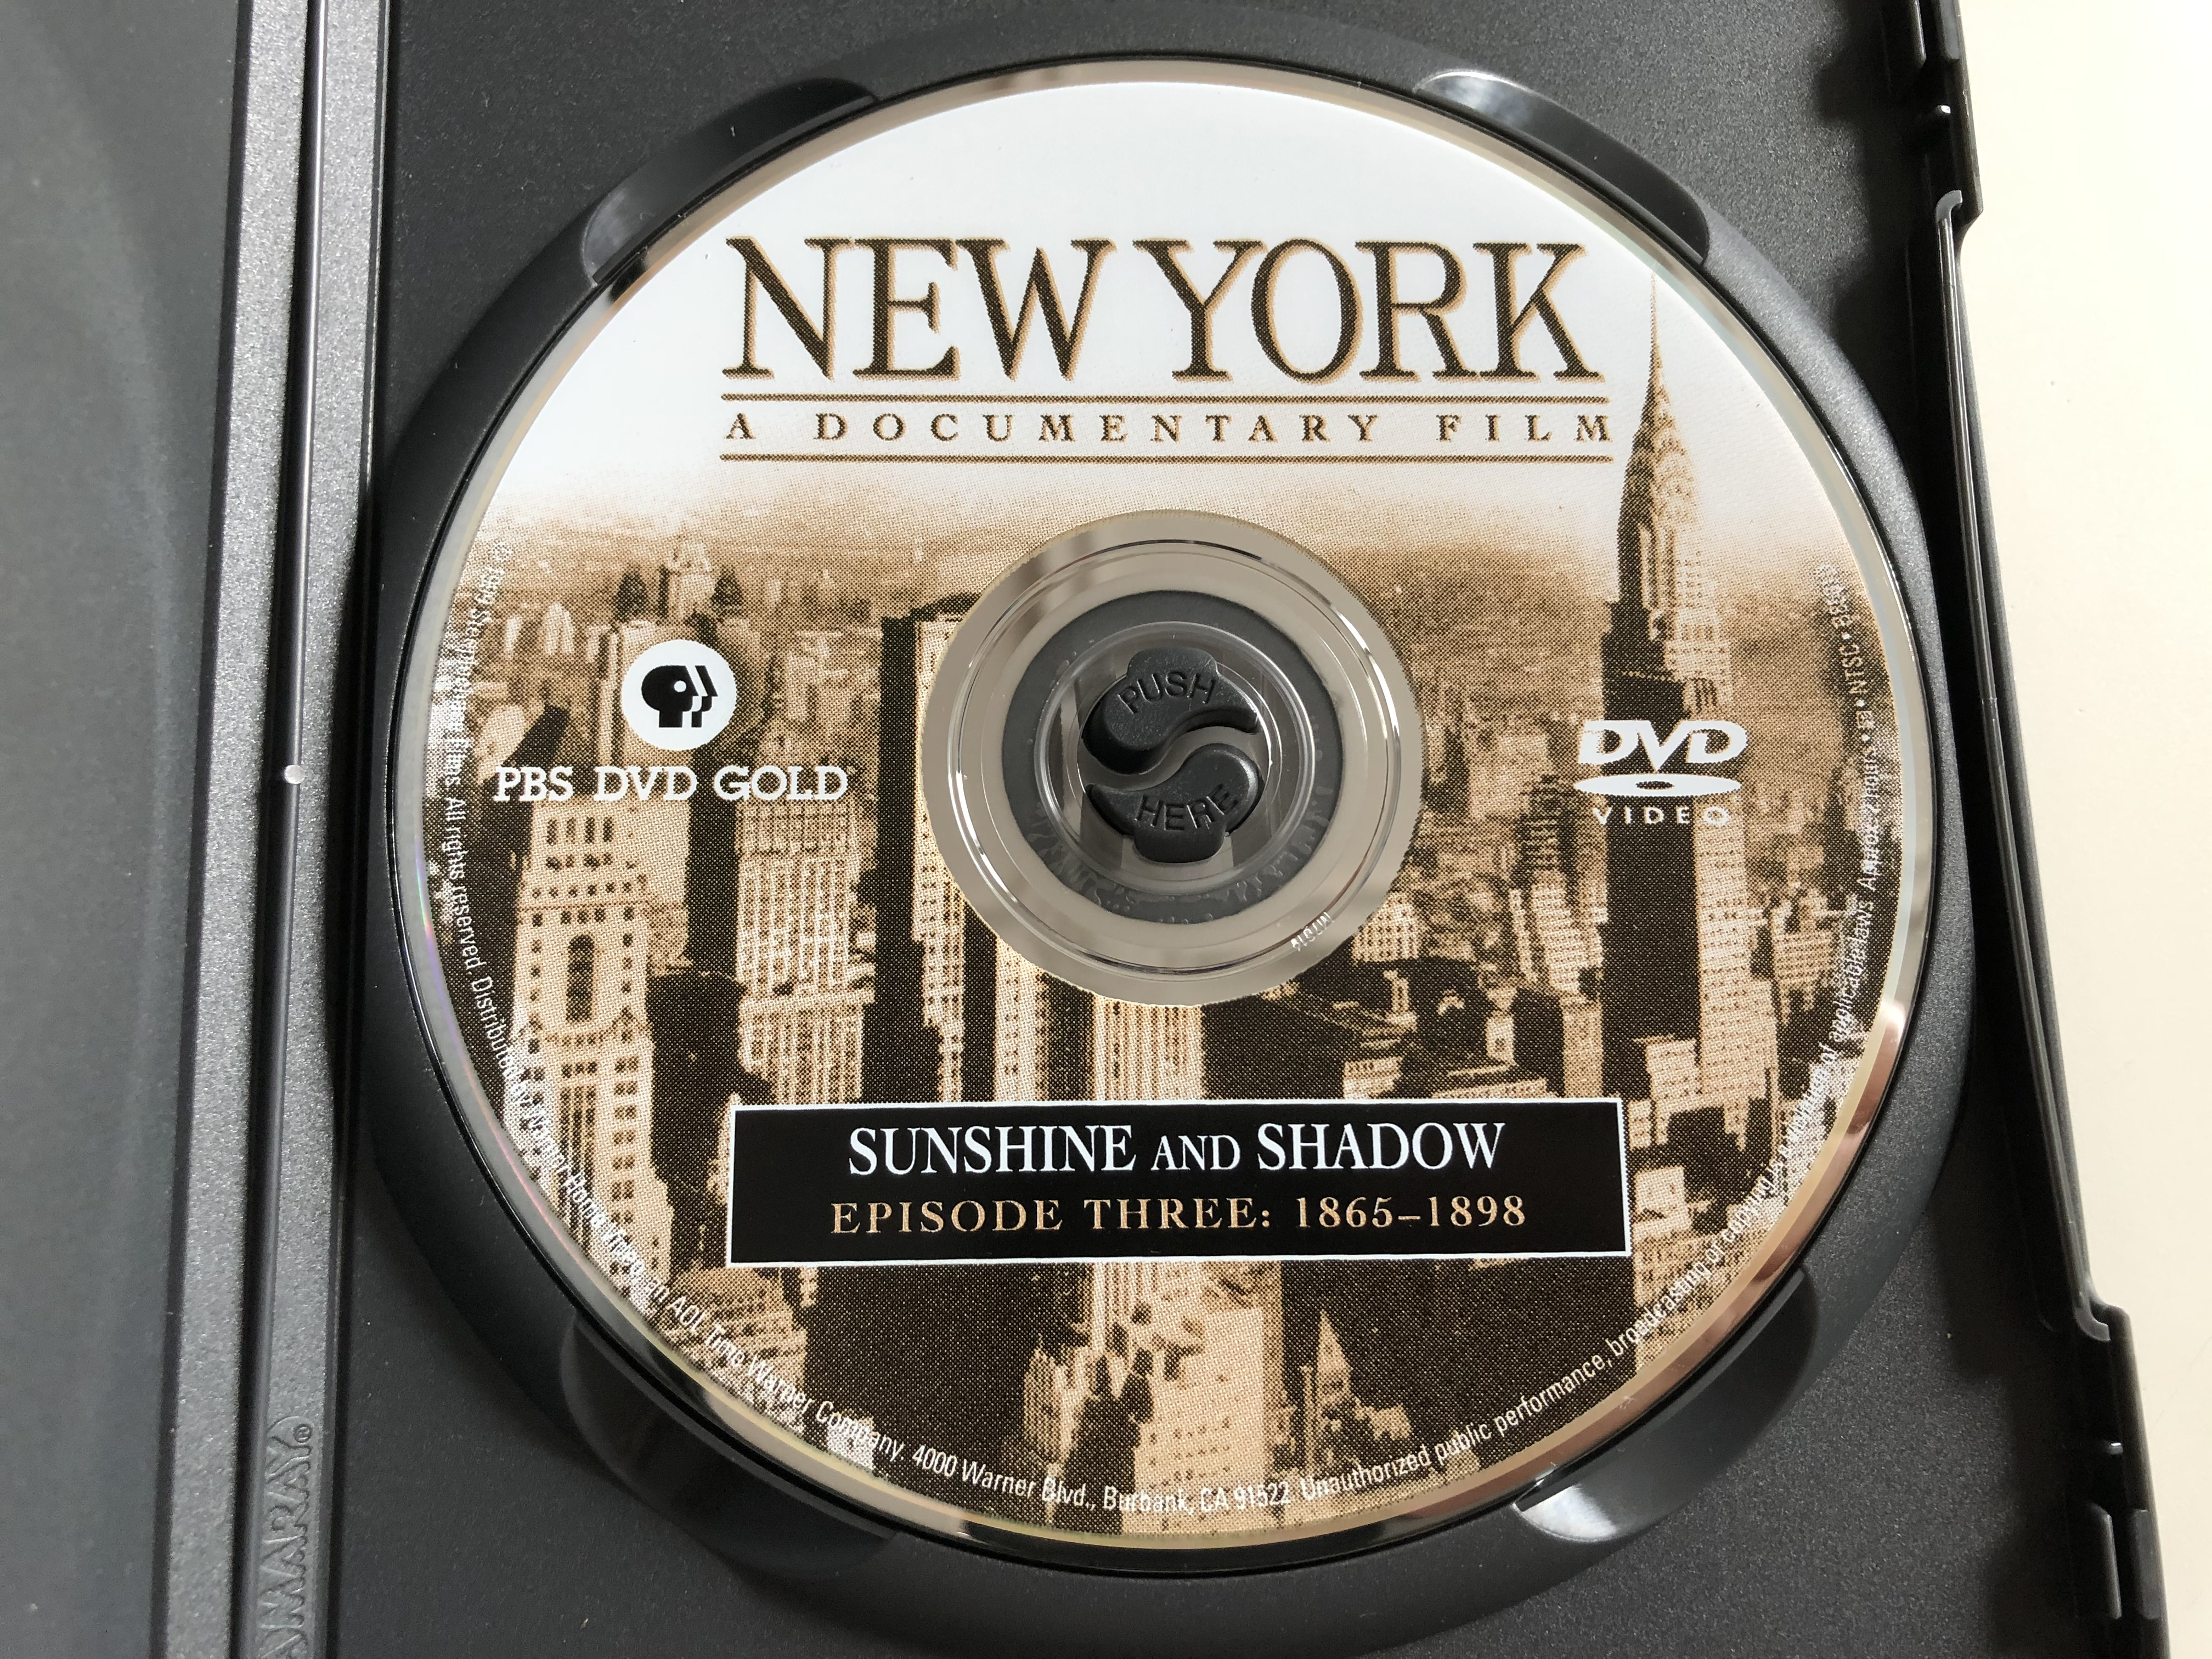 new-york-episode-3-1865-to-1989-sunshine-and-shadow-dvd-1999-2.jpg